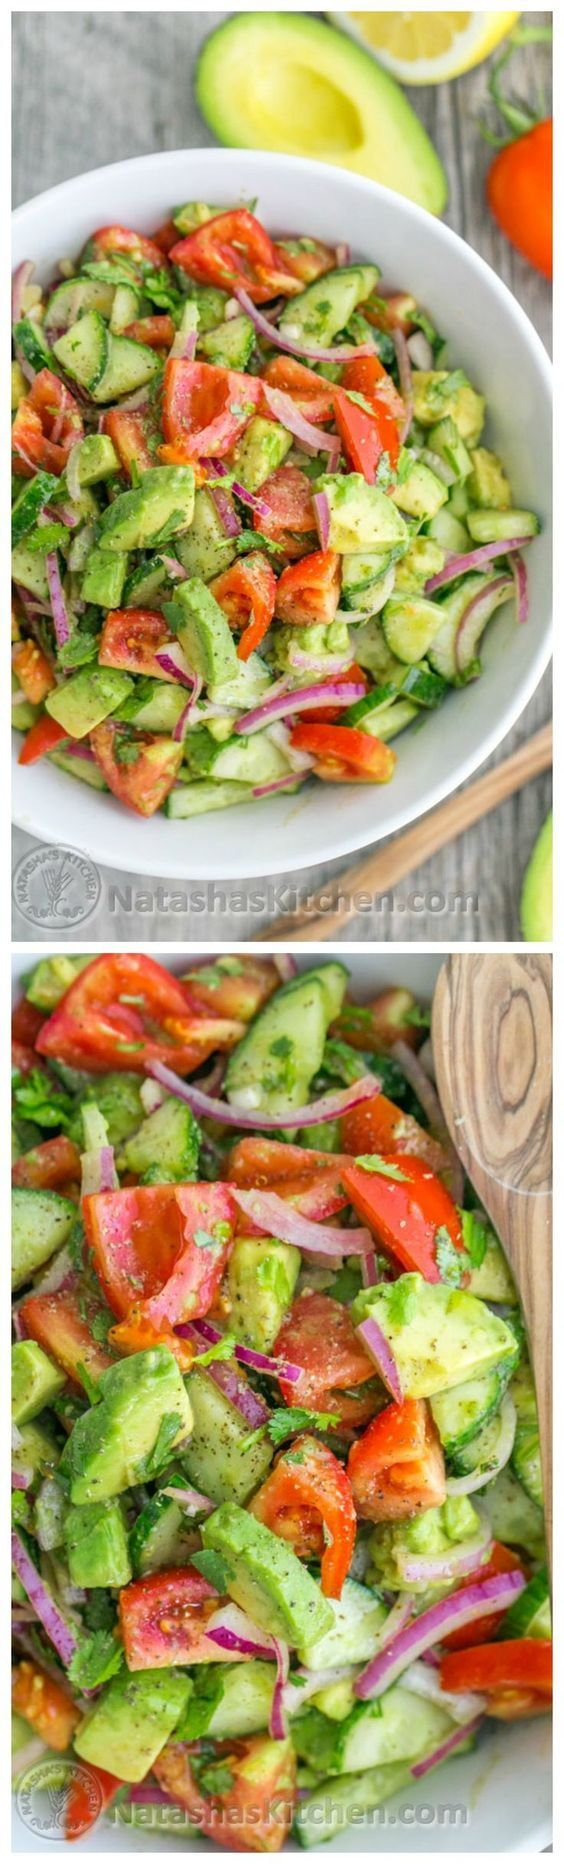 Cucumber Tomato Avocado Salad - This Cucumber Tomato Avocado Salad recipe is a keeper! Easy, Excellent Salad !